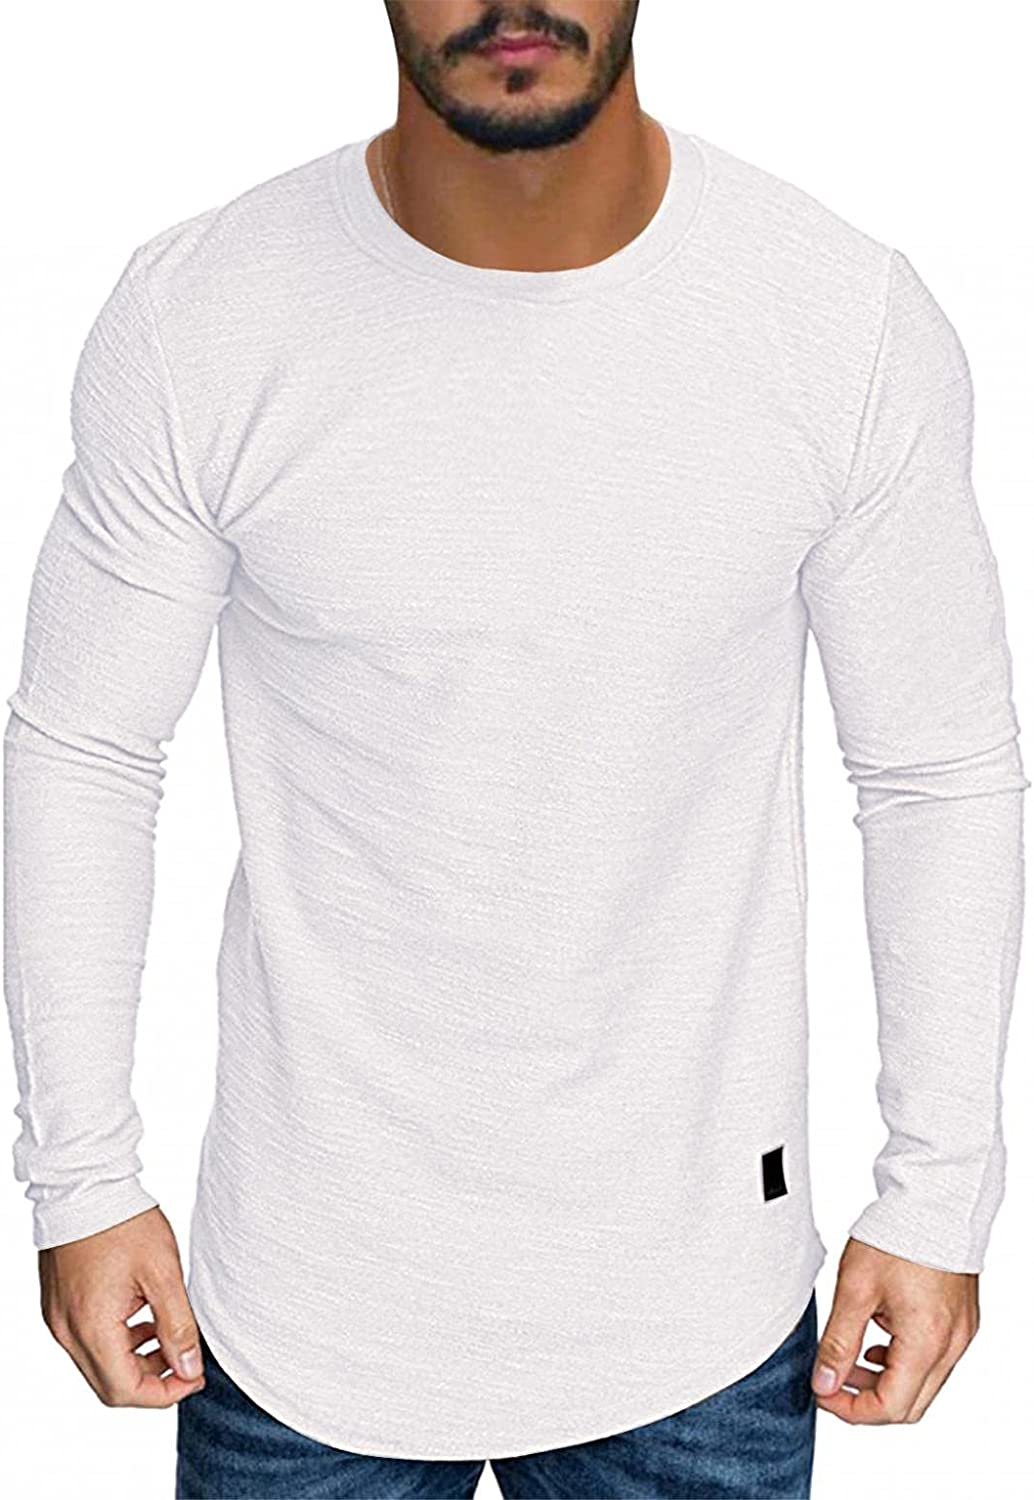 Mens Shirts Men's Casual Basic Solid Color Jacket T-shirt Long Sleeve Tee Shirts for Men Top Blouse Polo Shirts for Men